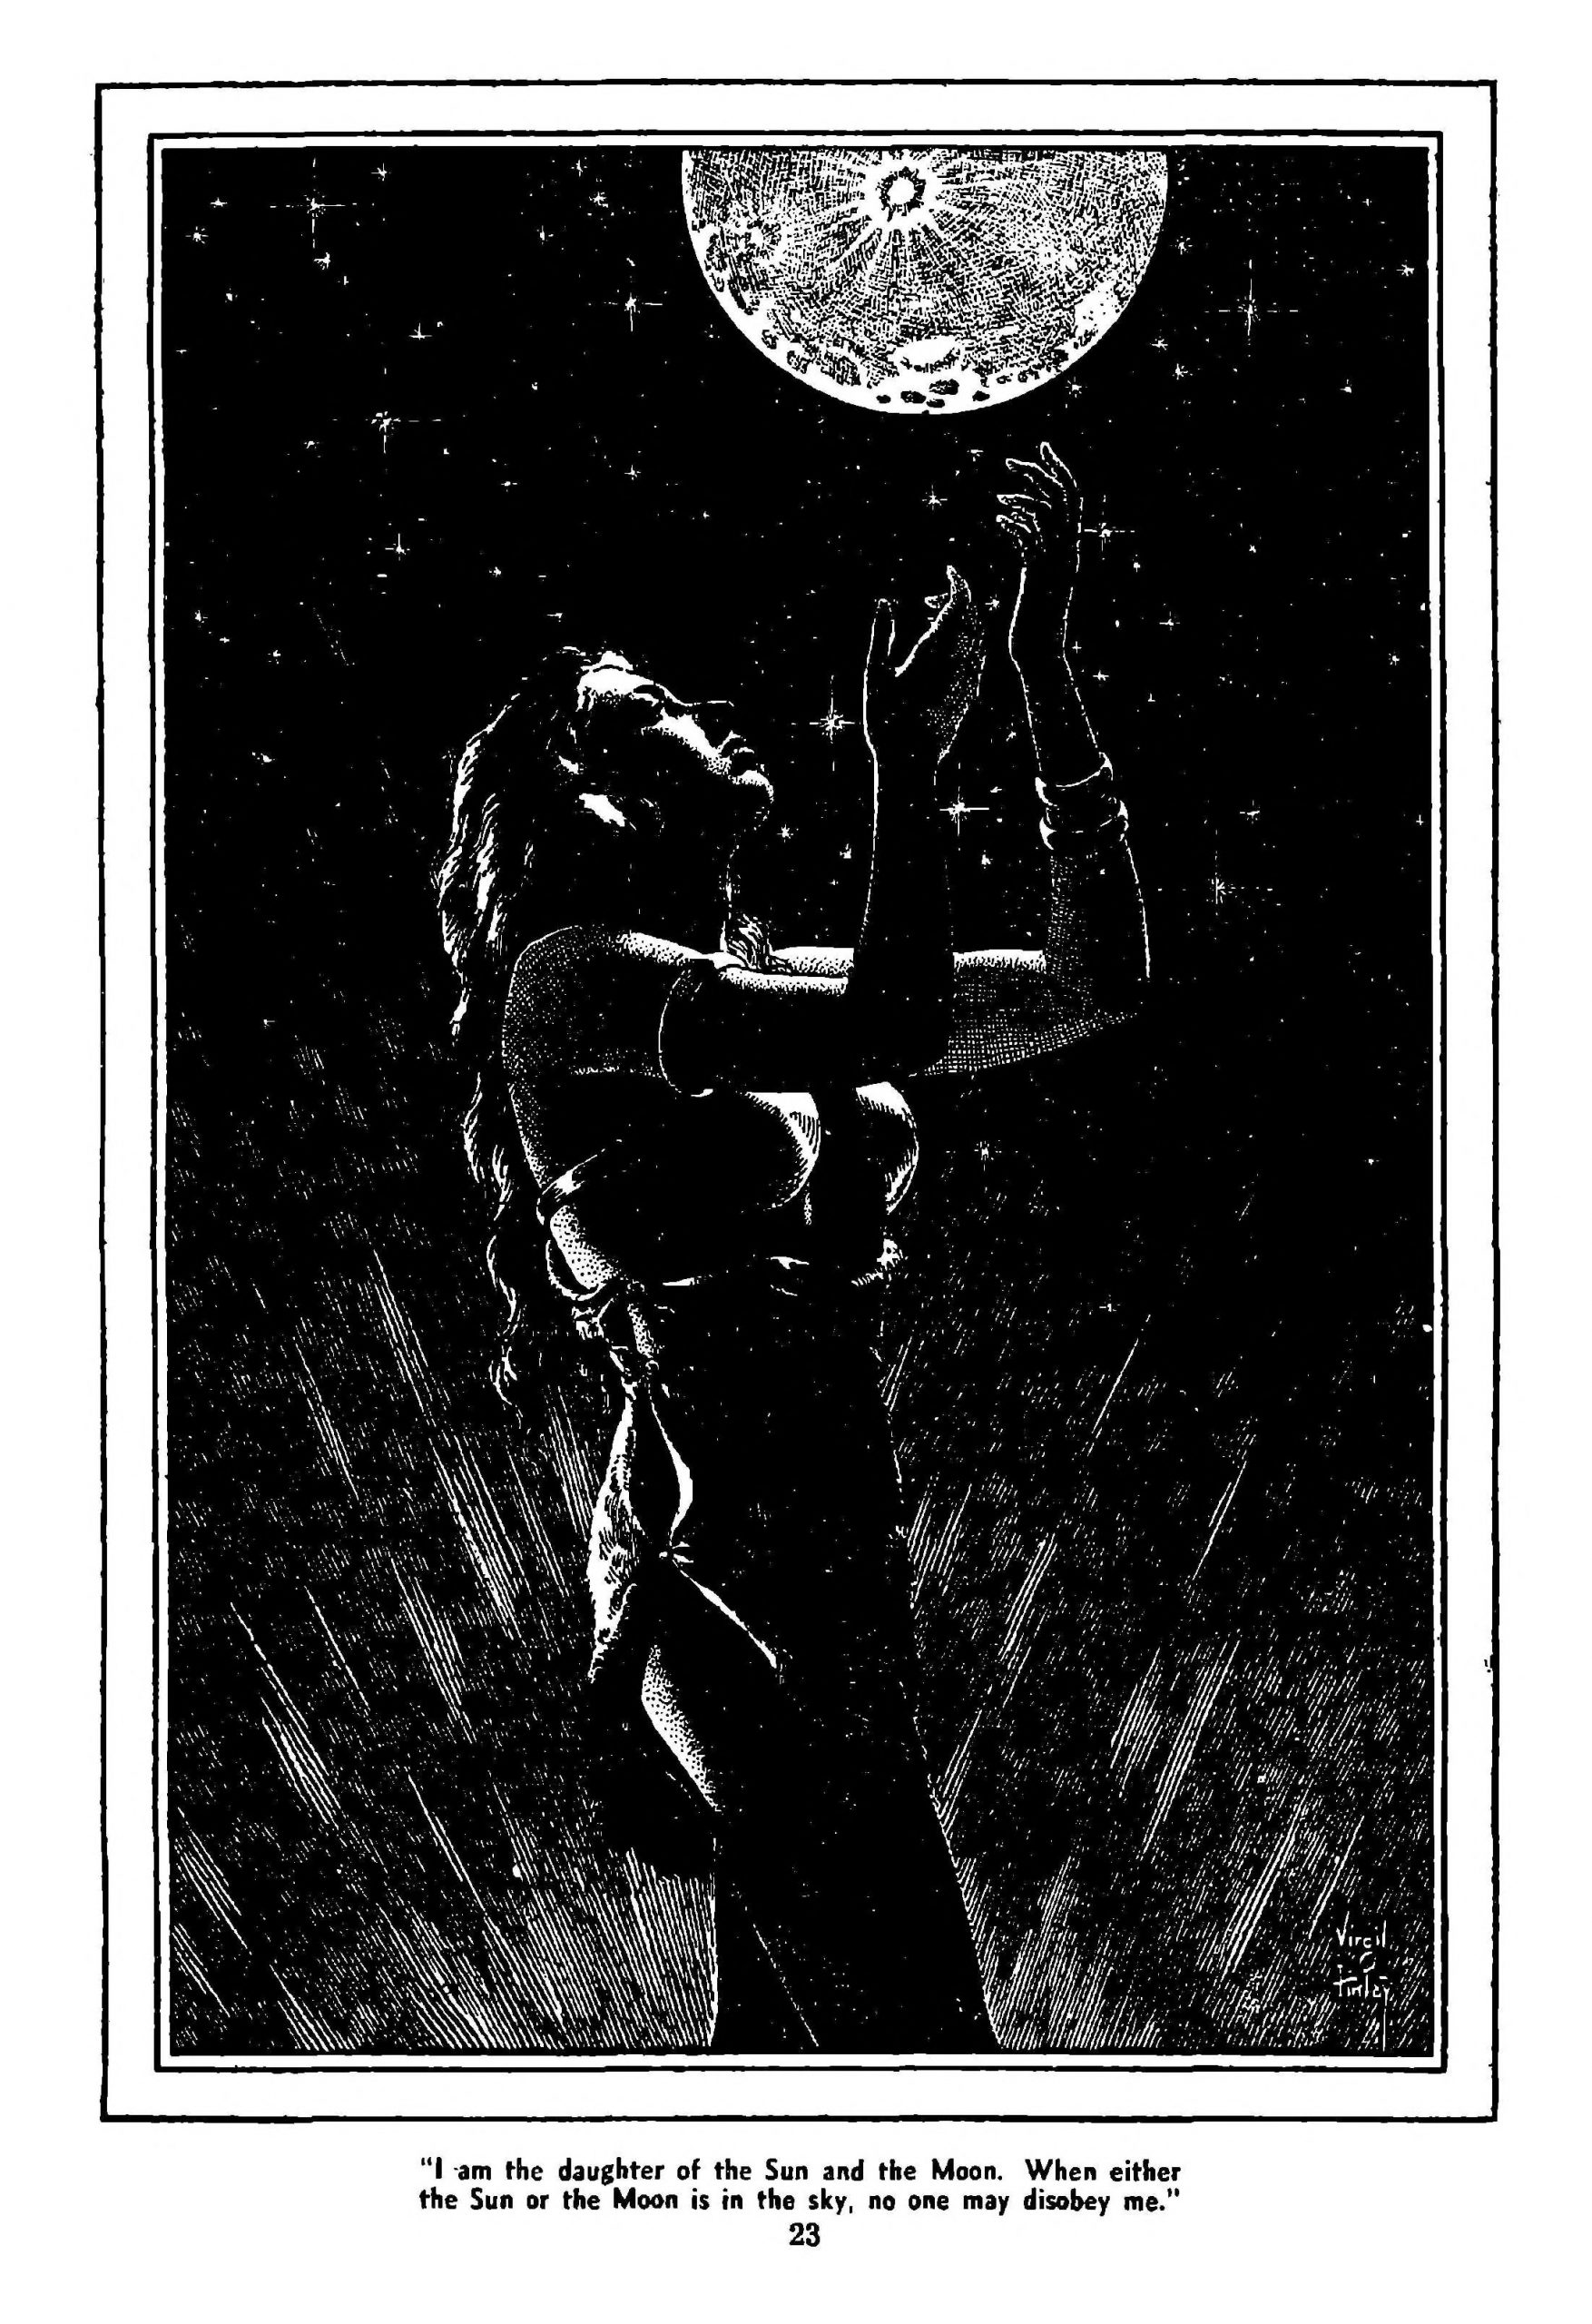 A hot woman gestures at the moon in this Virgil Finlay illustration.